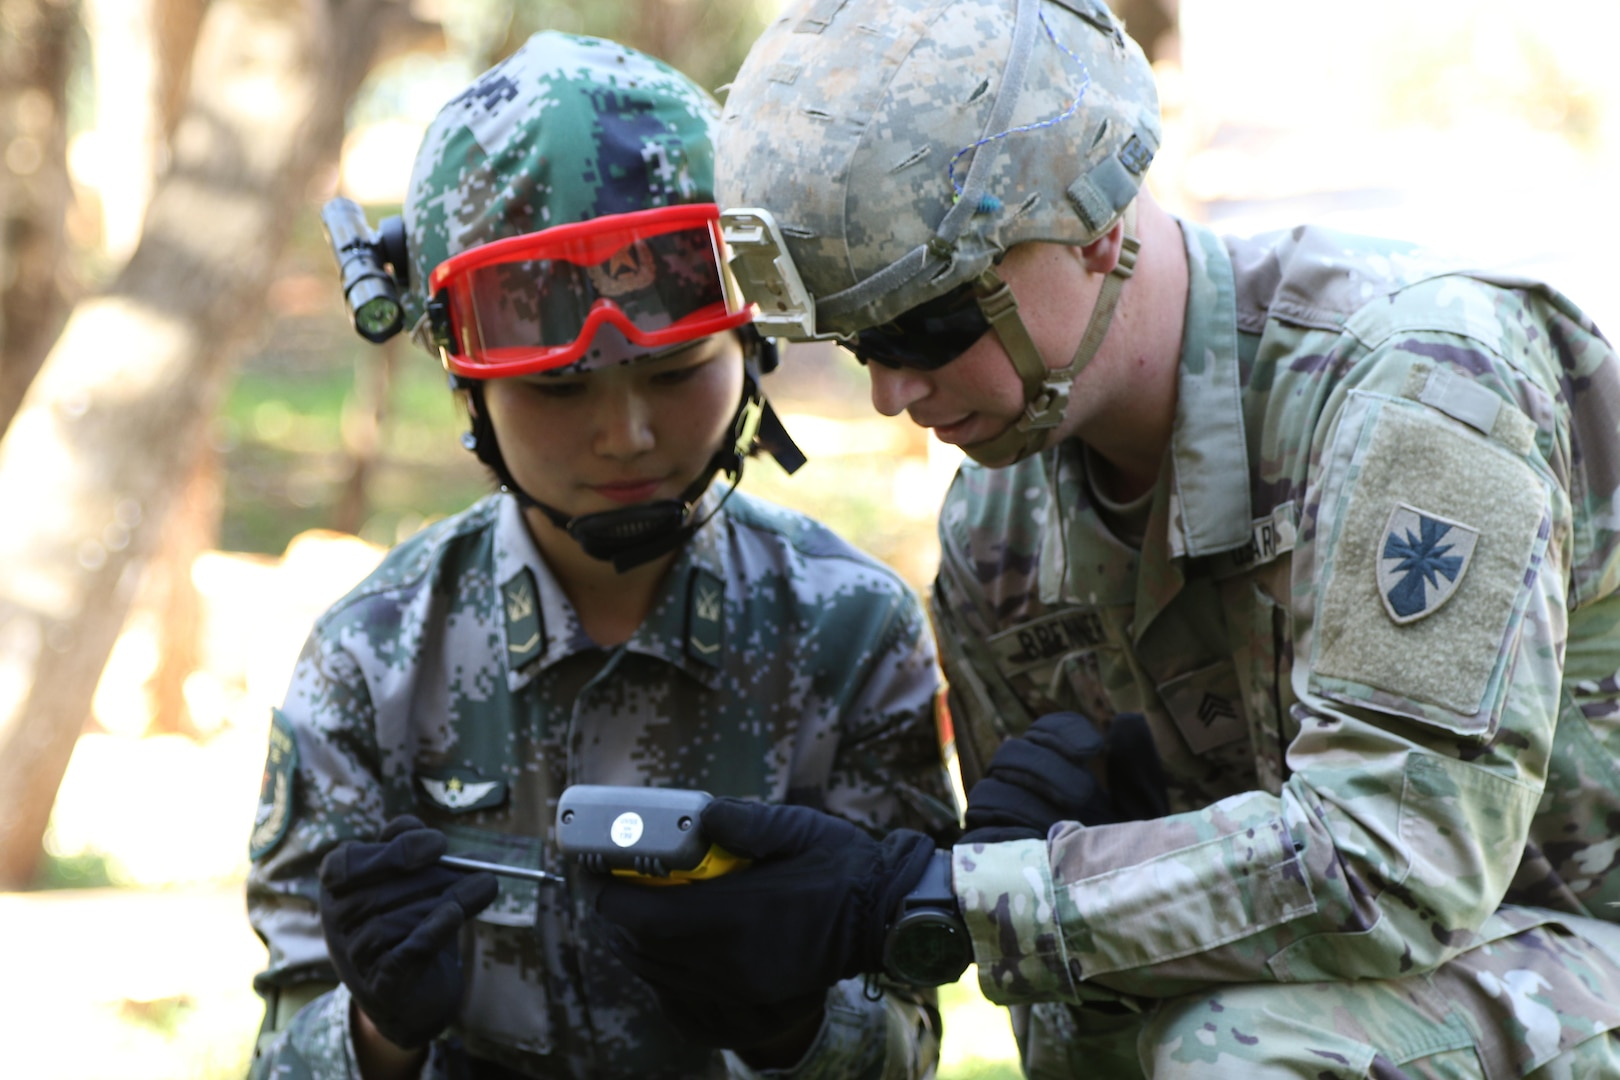 (US Army photo by Spc. Alvin Reeves/Released)